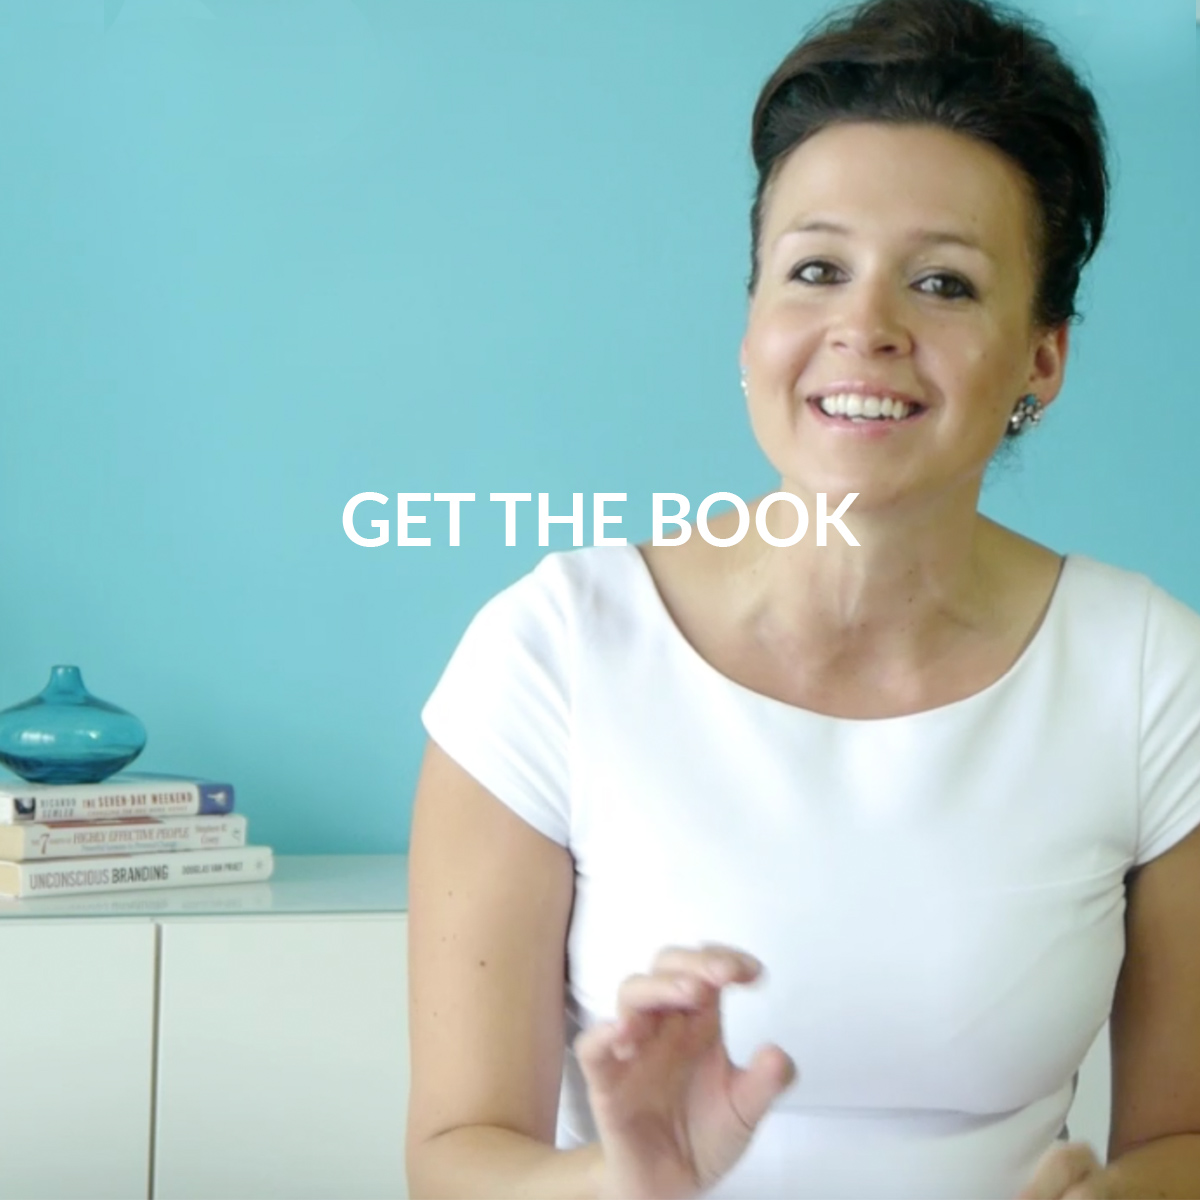 get-the-book